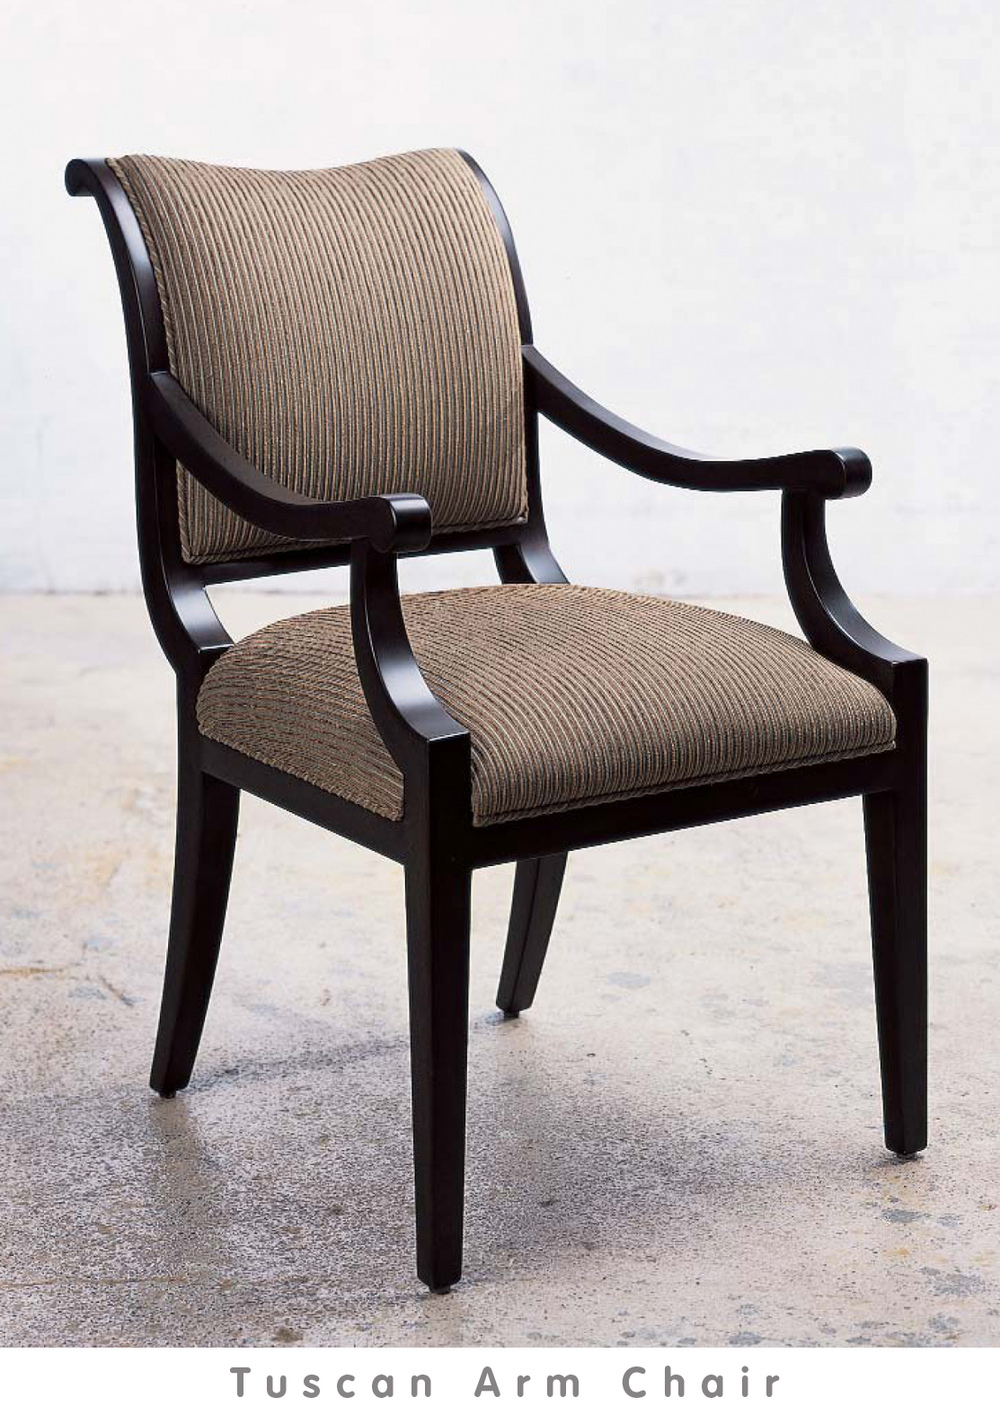 Tuscan Arm Chair